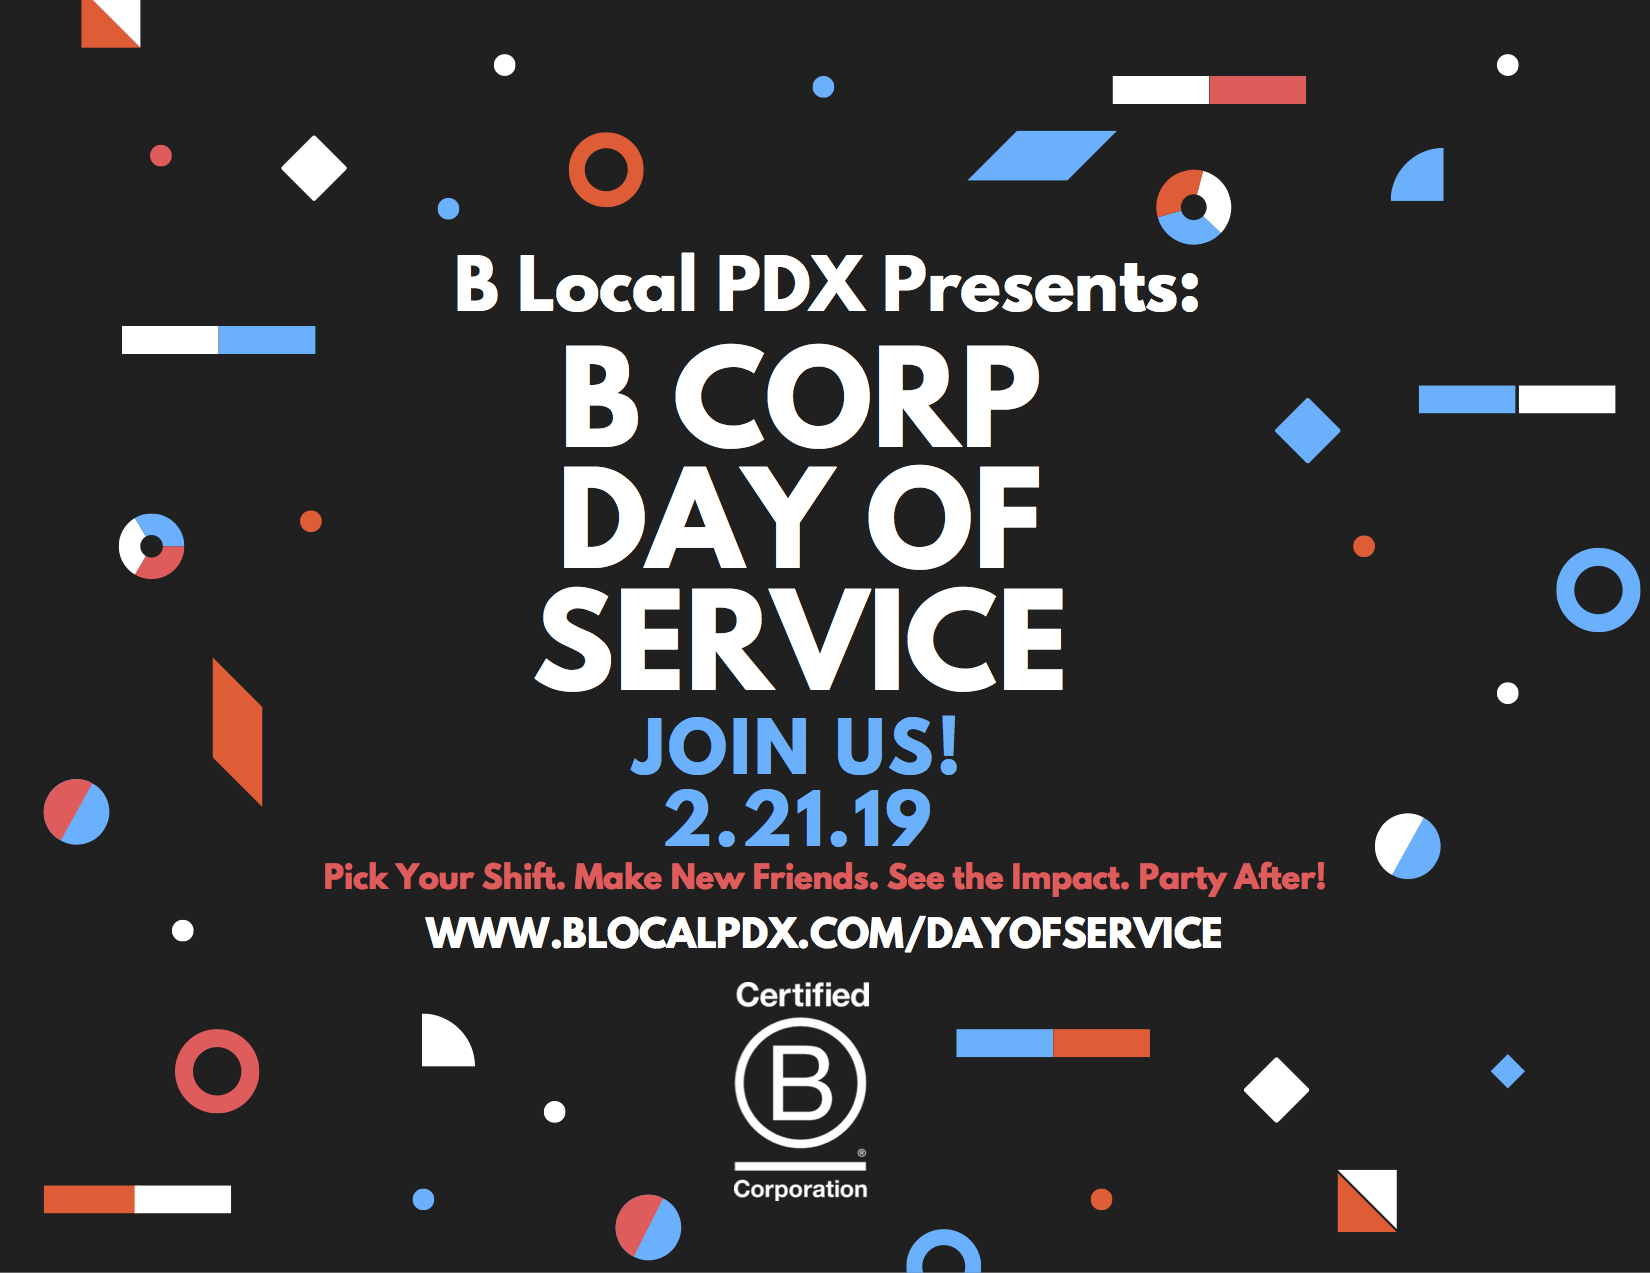 B Local PDX - B Corp Day of Service on February 21, 2019